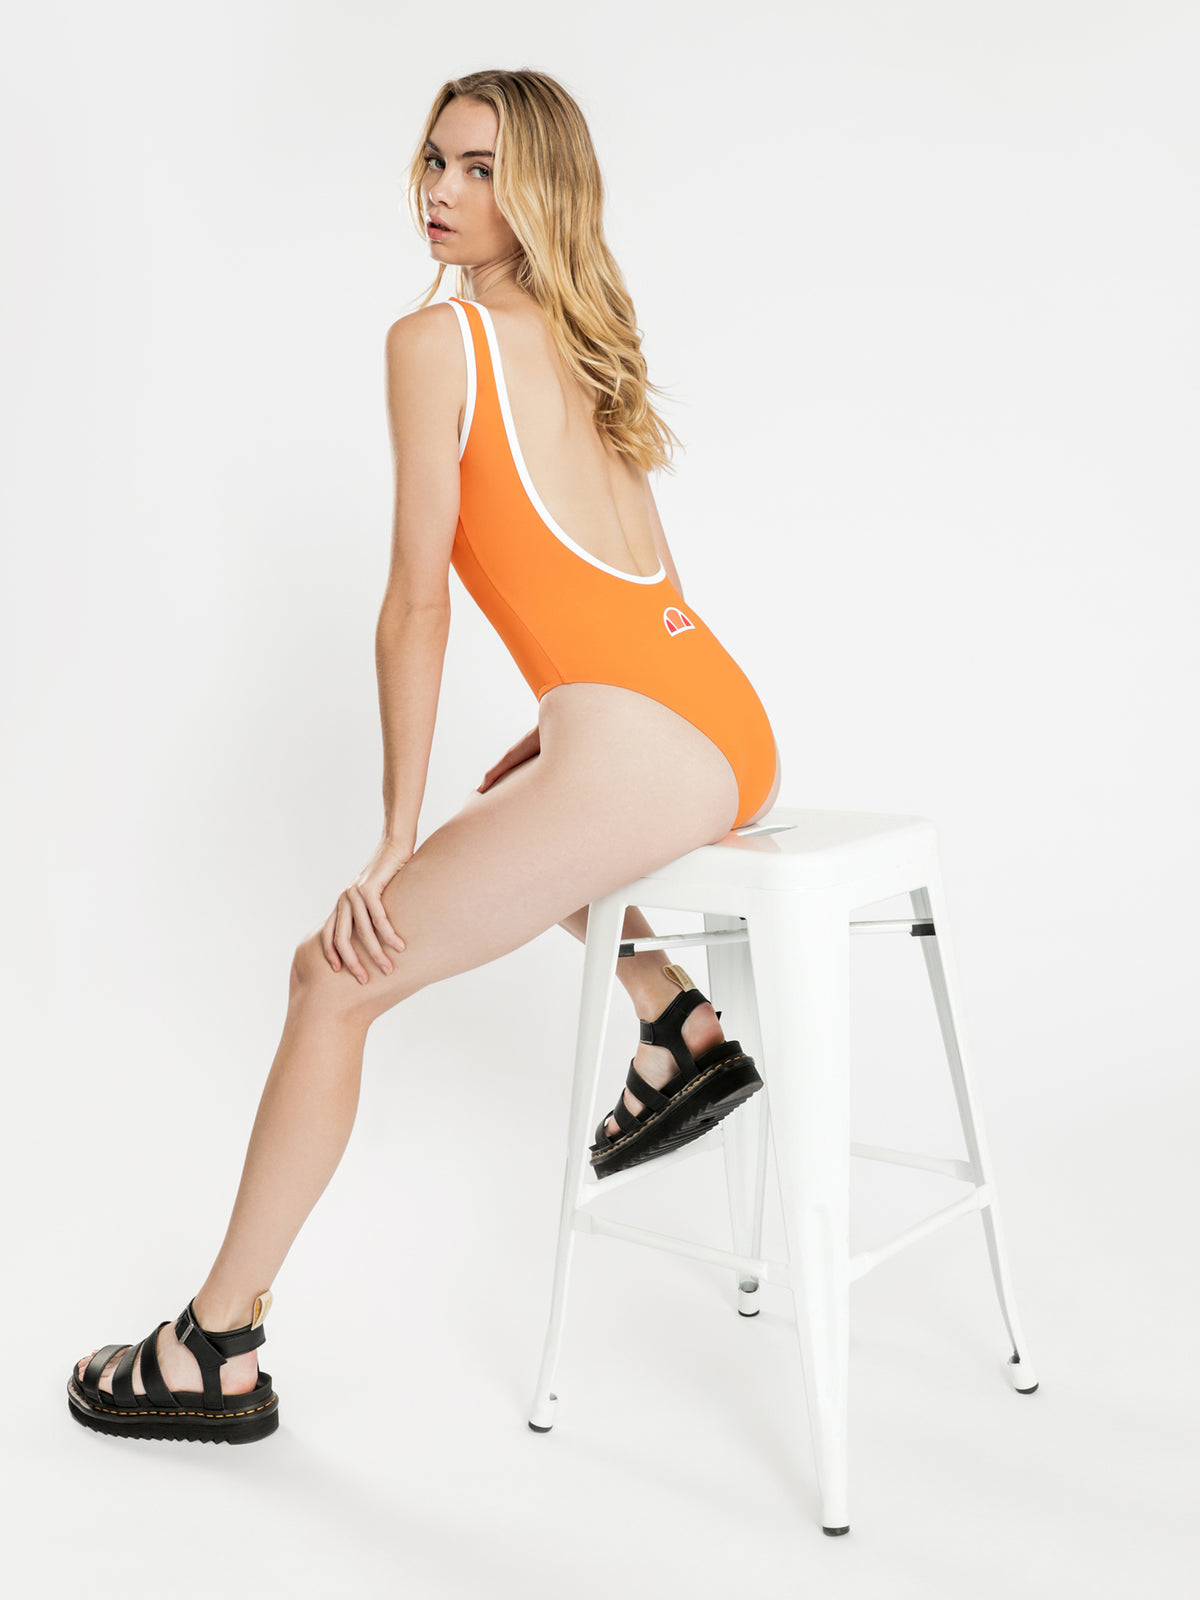 Lilly One Piece in Orange